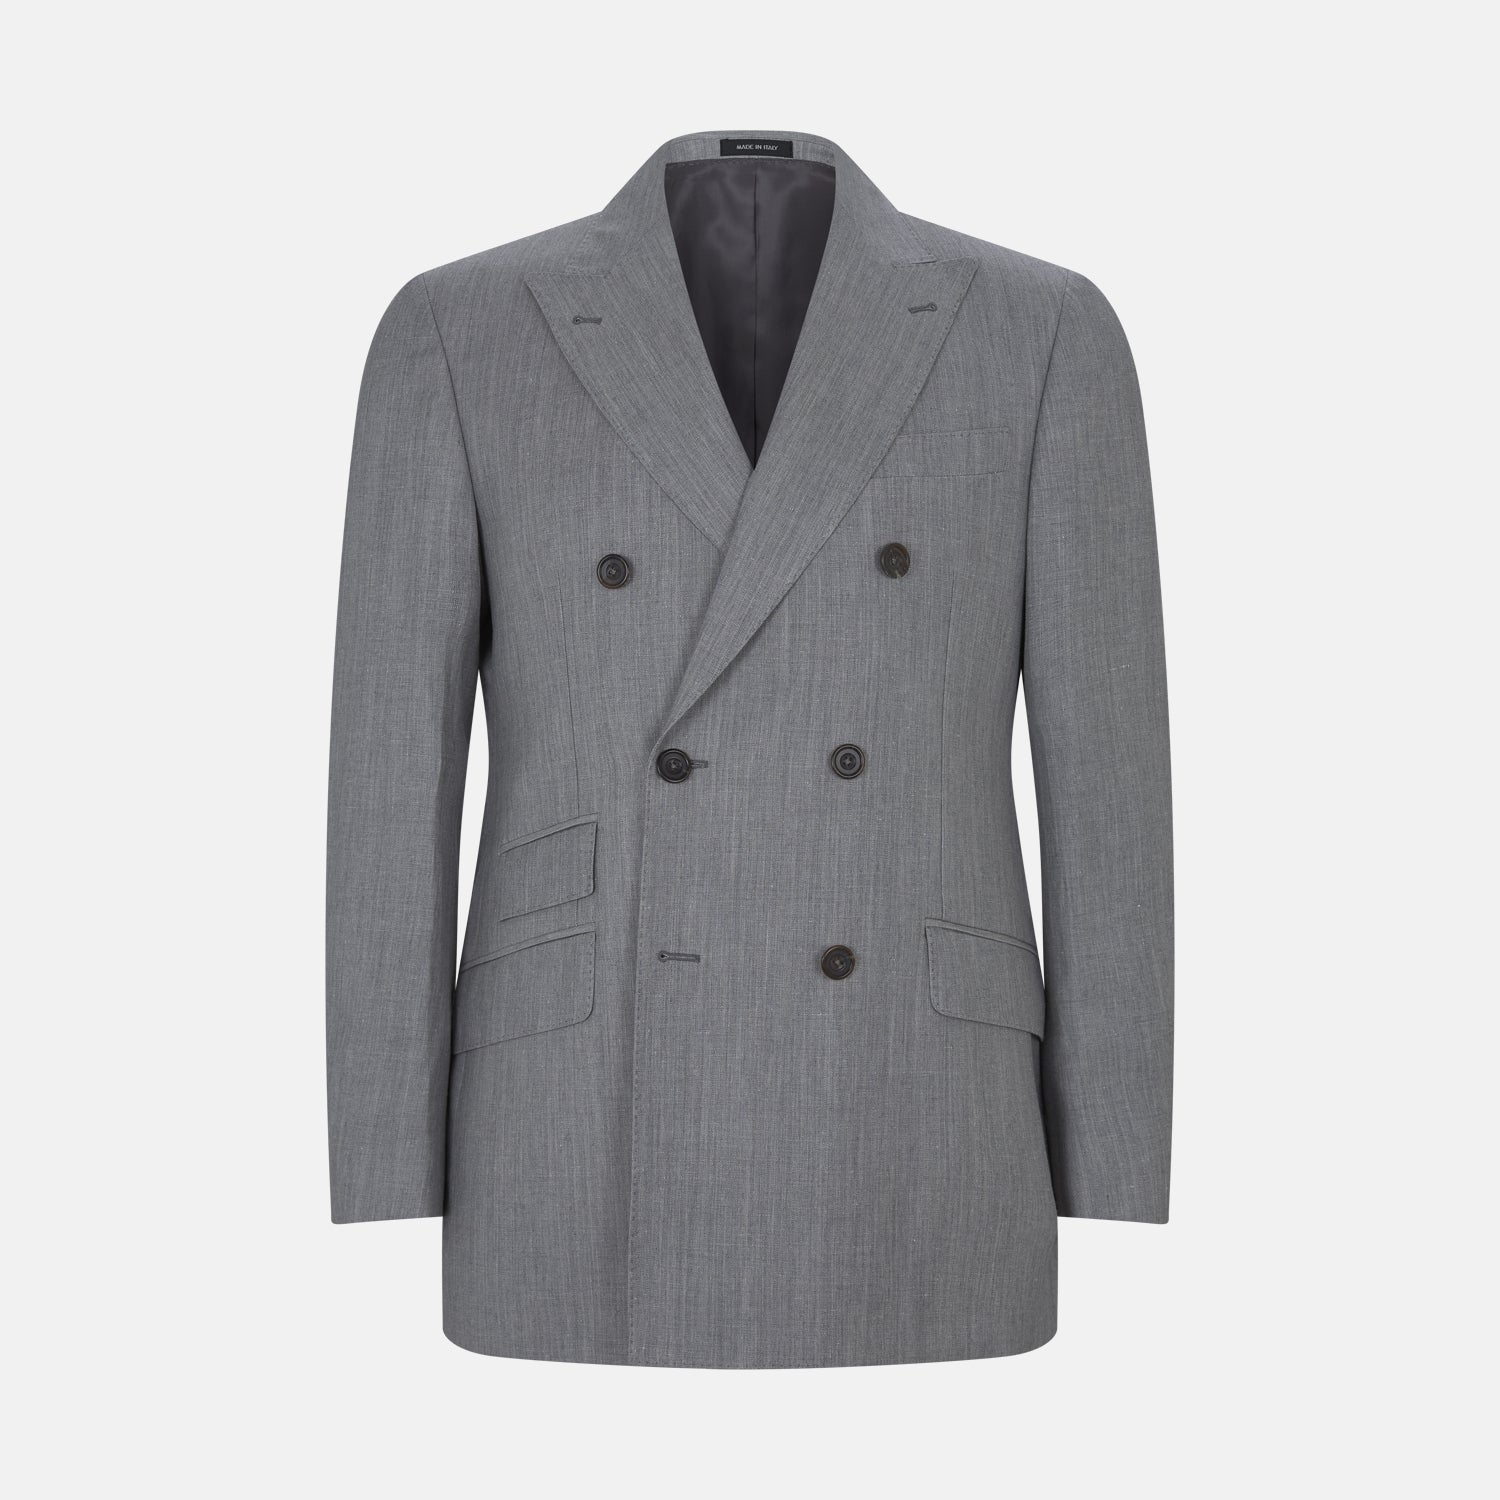 Bertie Grey Double Breasted Linen Jacket